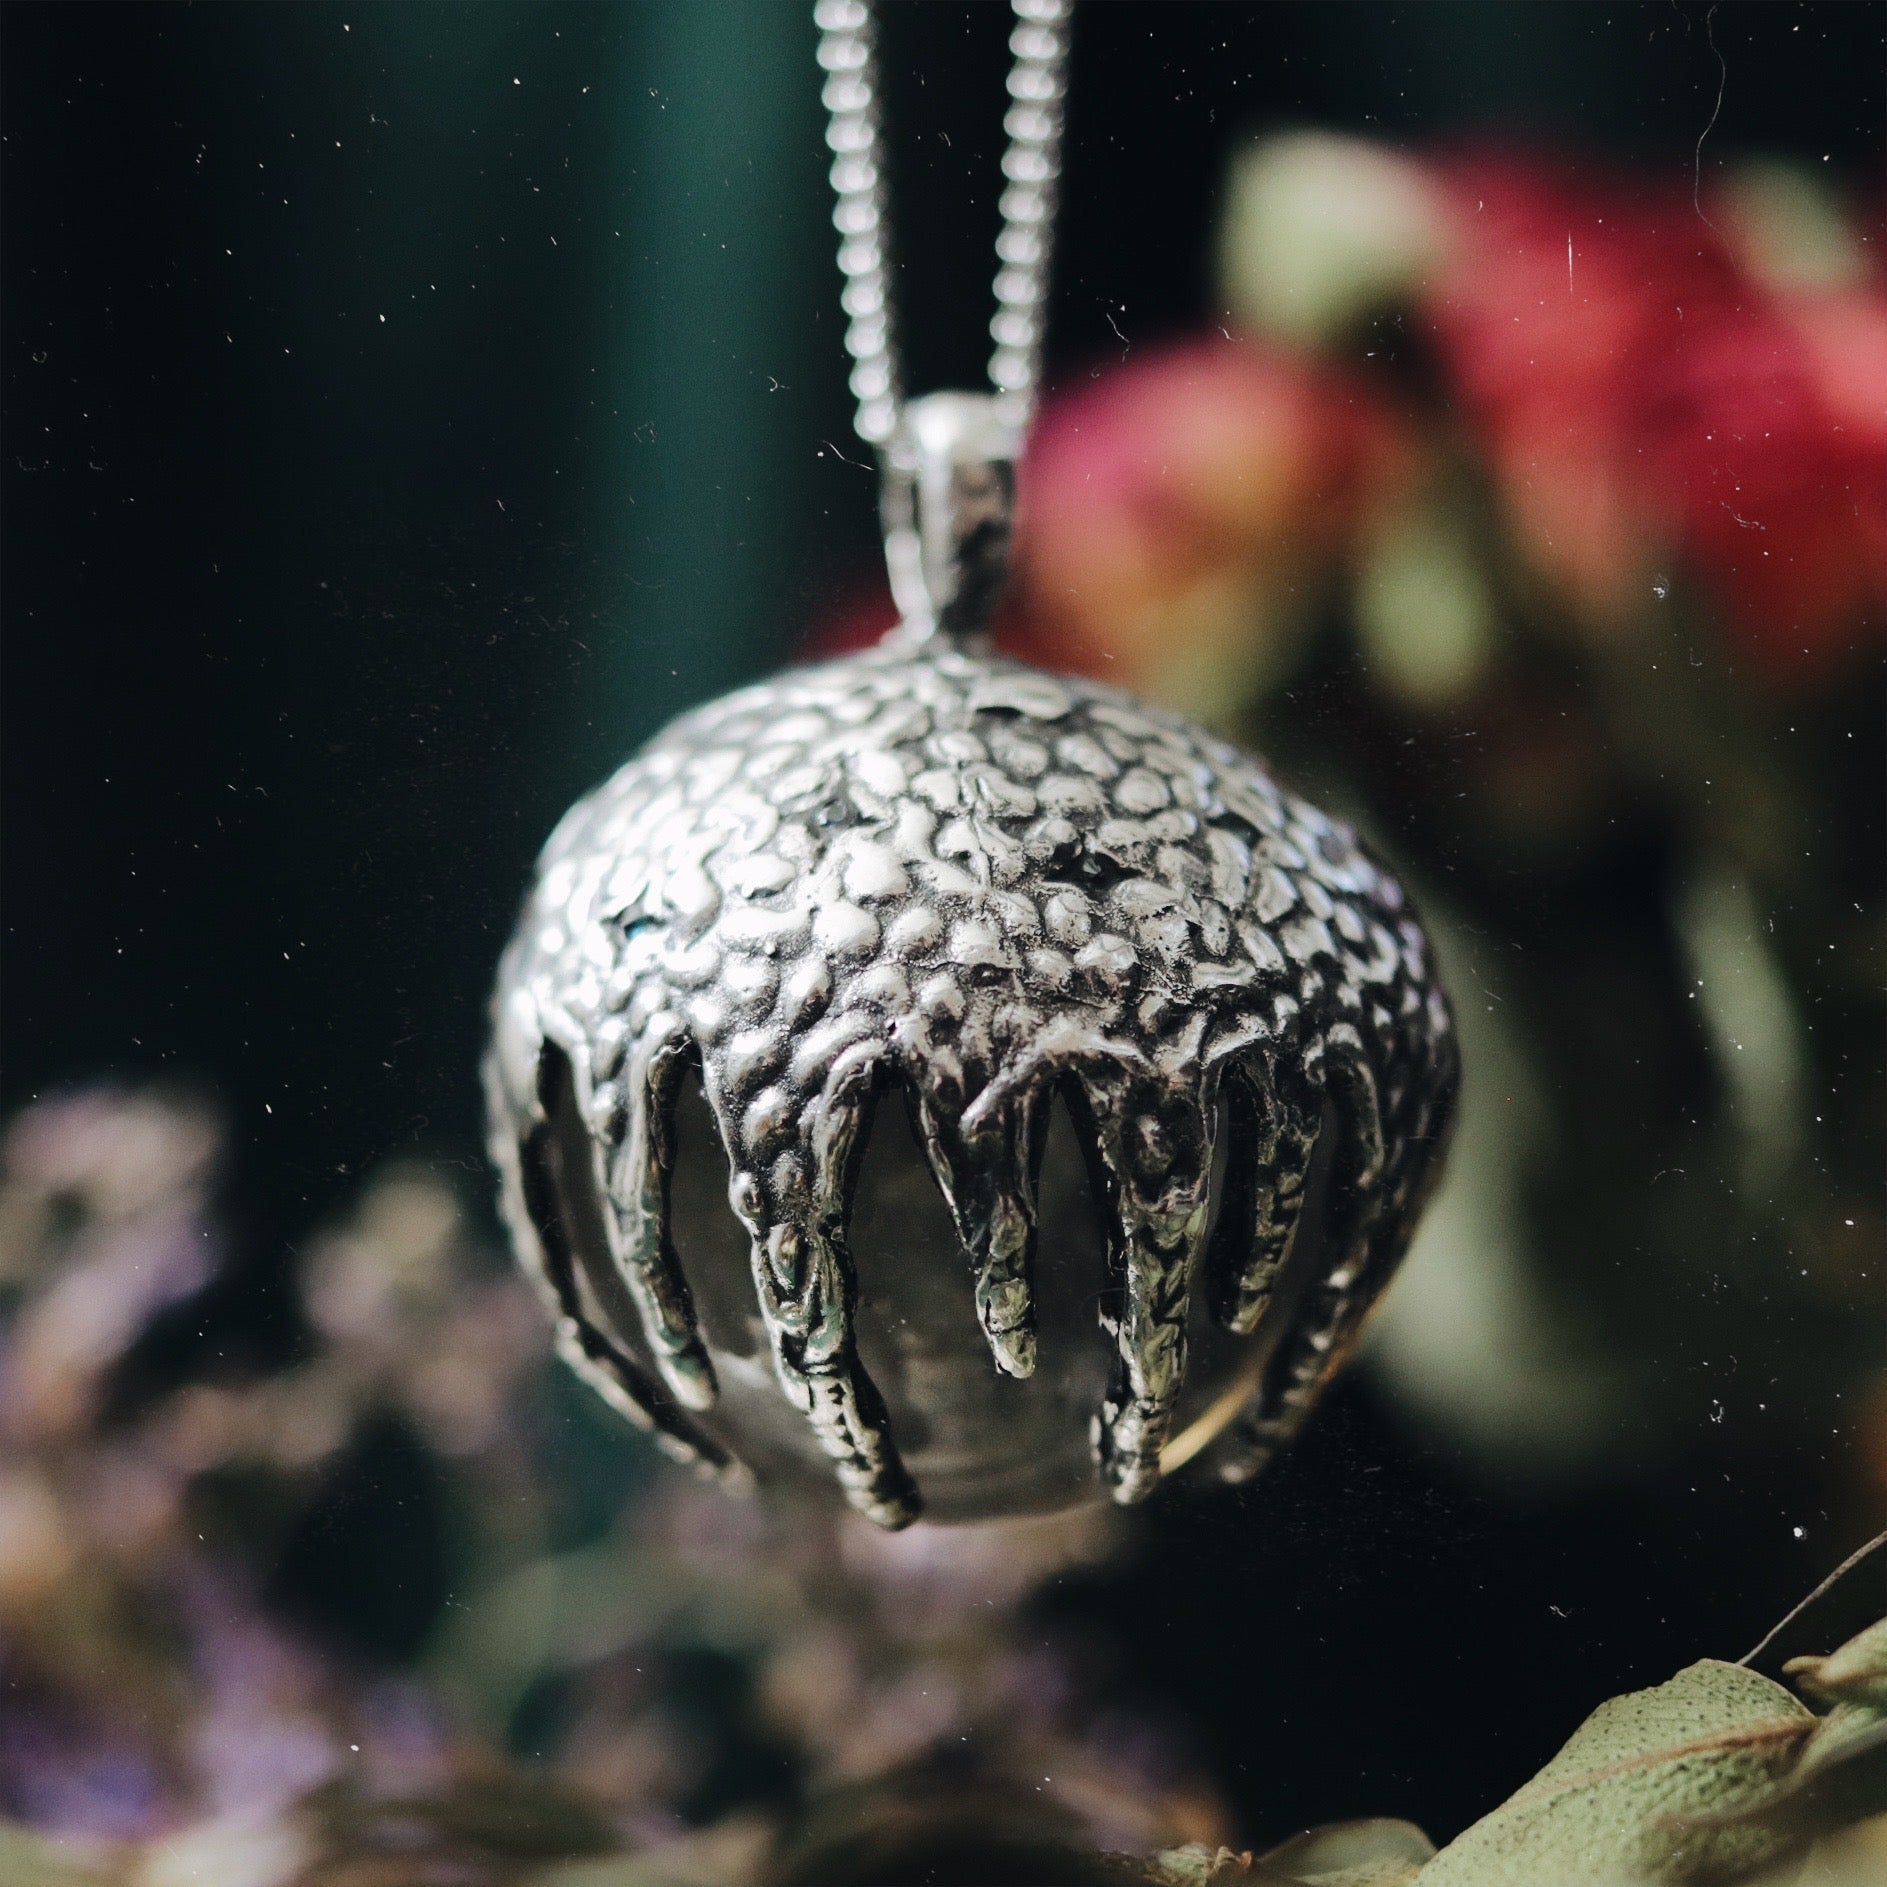 Victory Clear Quartz Crystal Ball Necklace #07